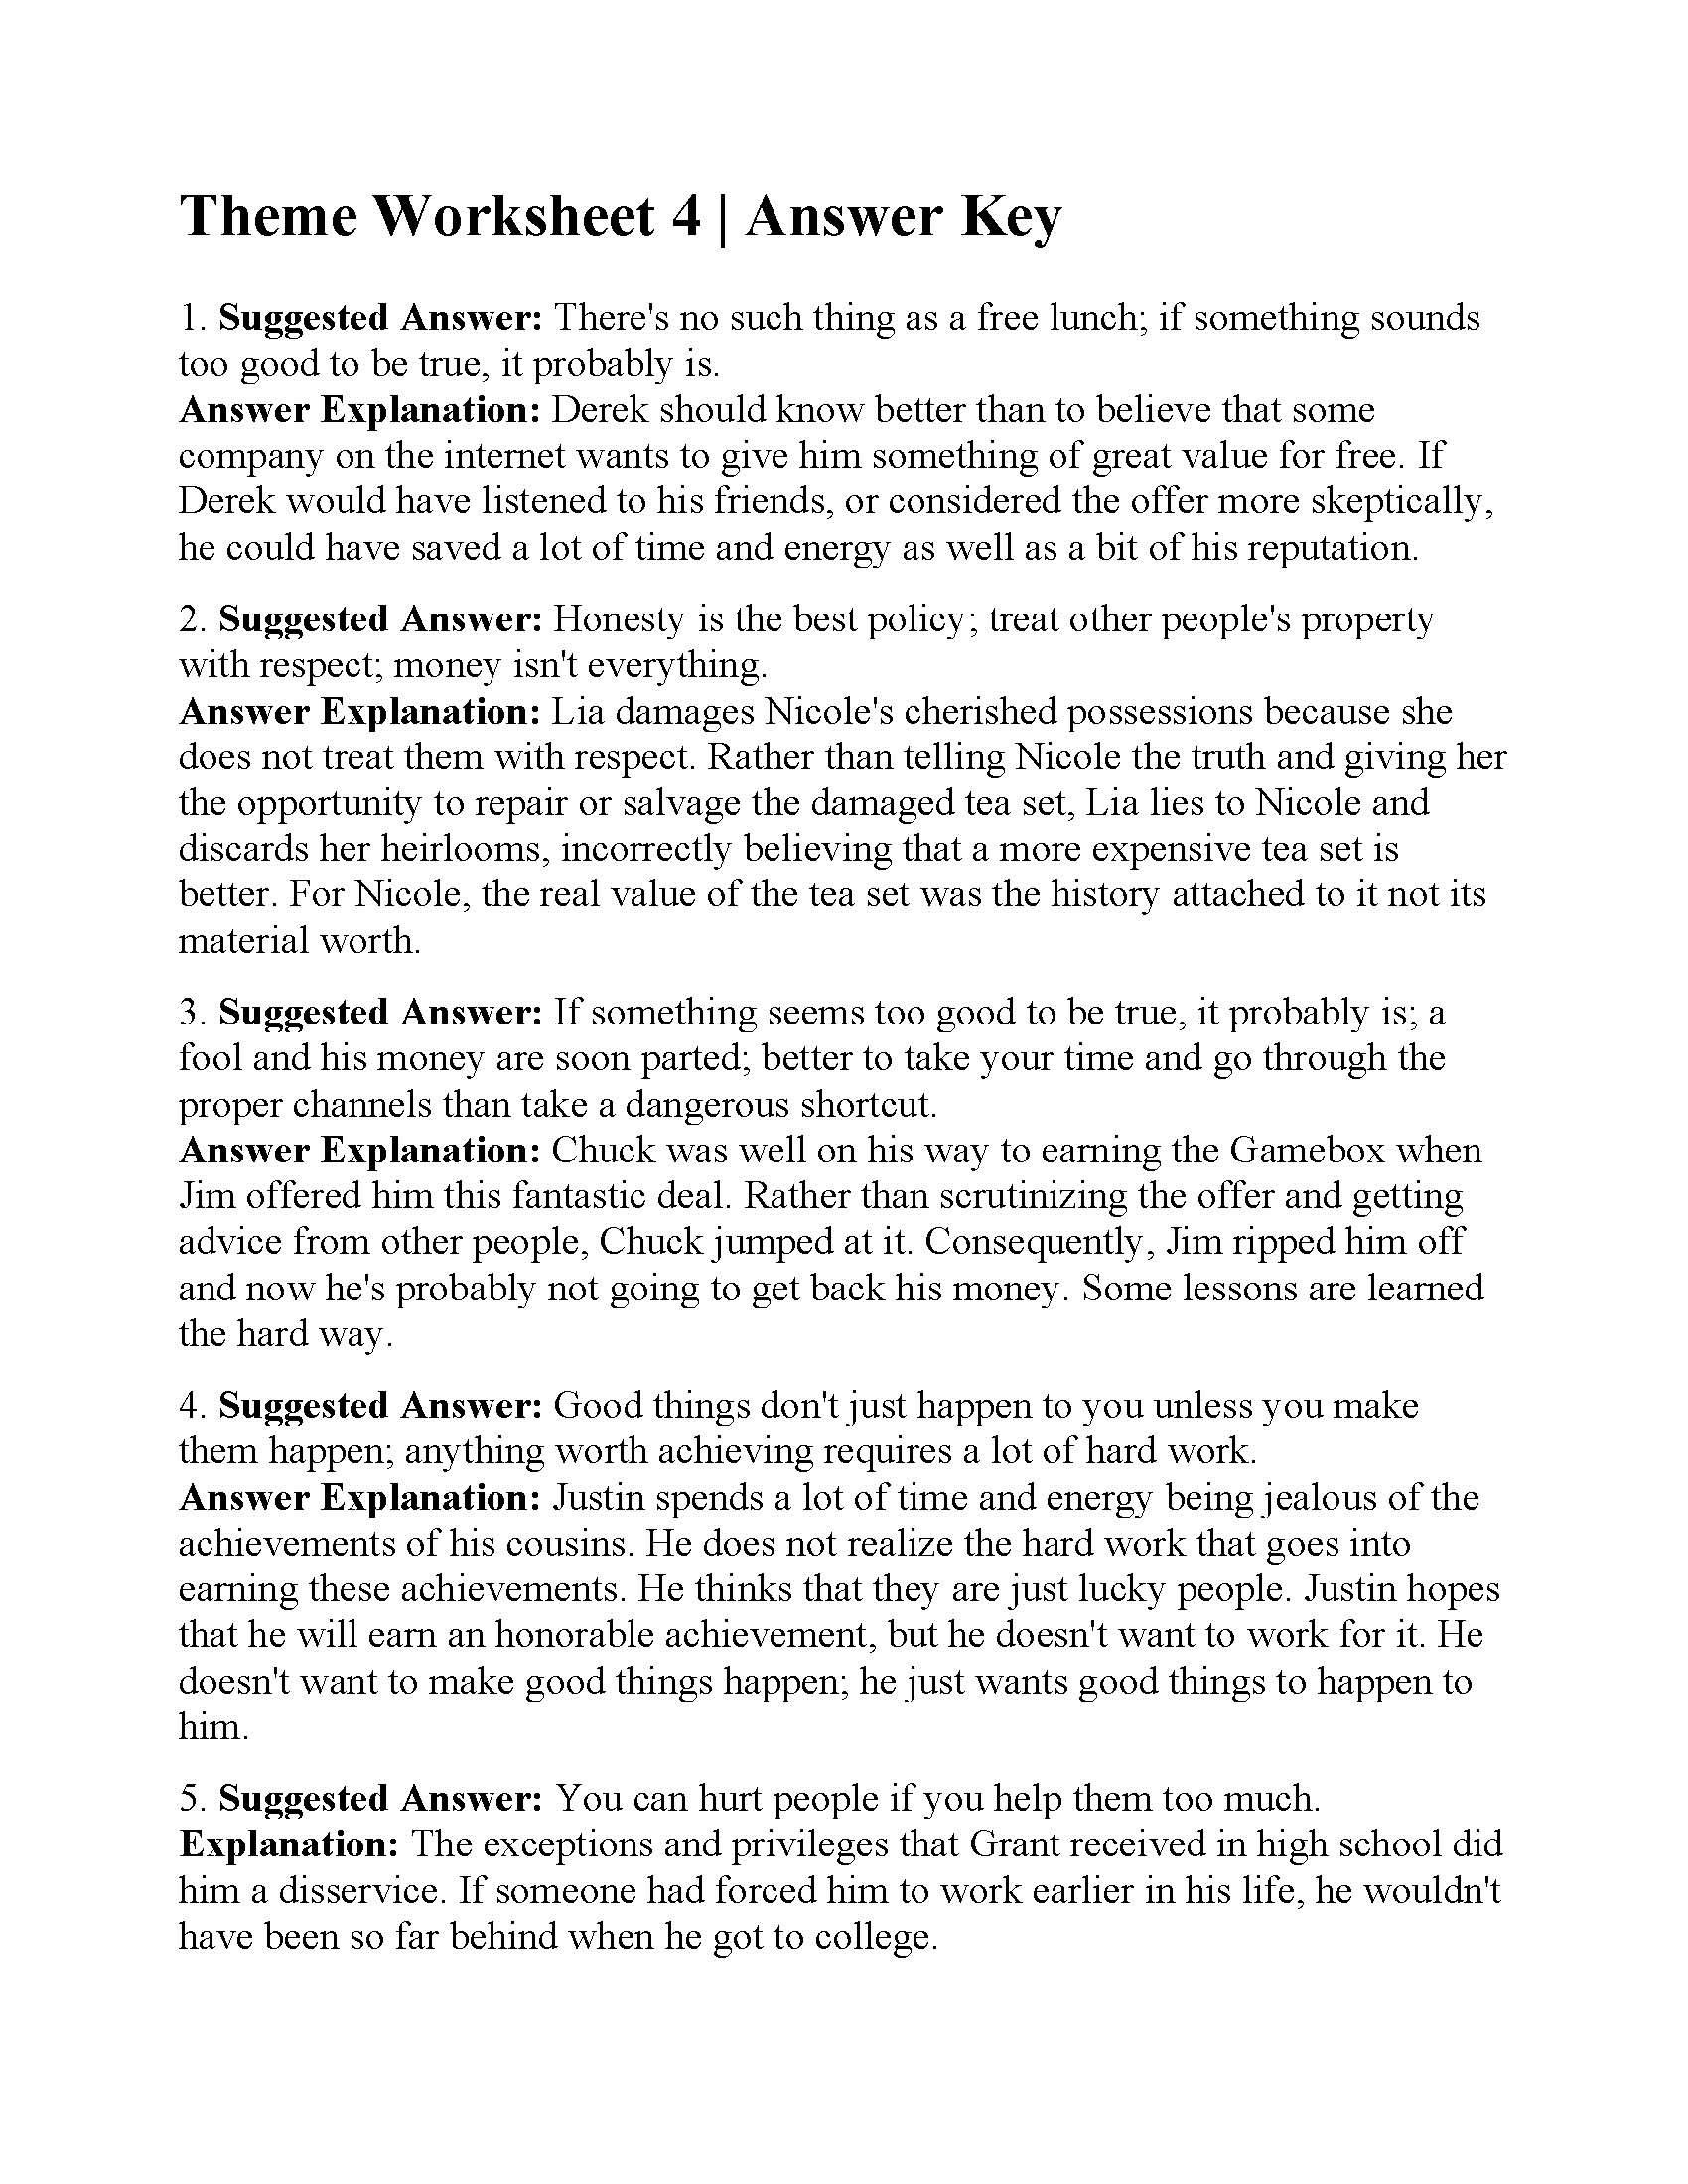 Theme Worksheets High School This is the Answer Key for the theme Worksheet 4